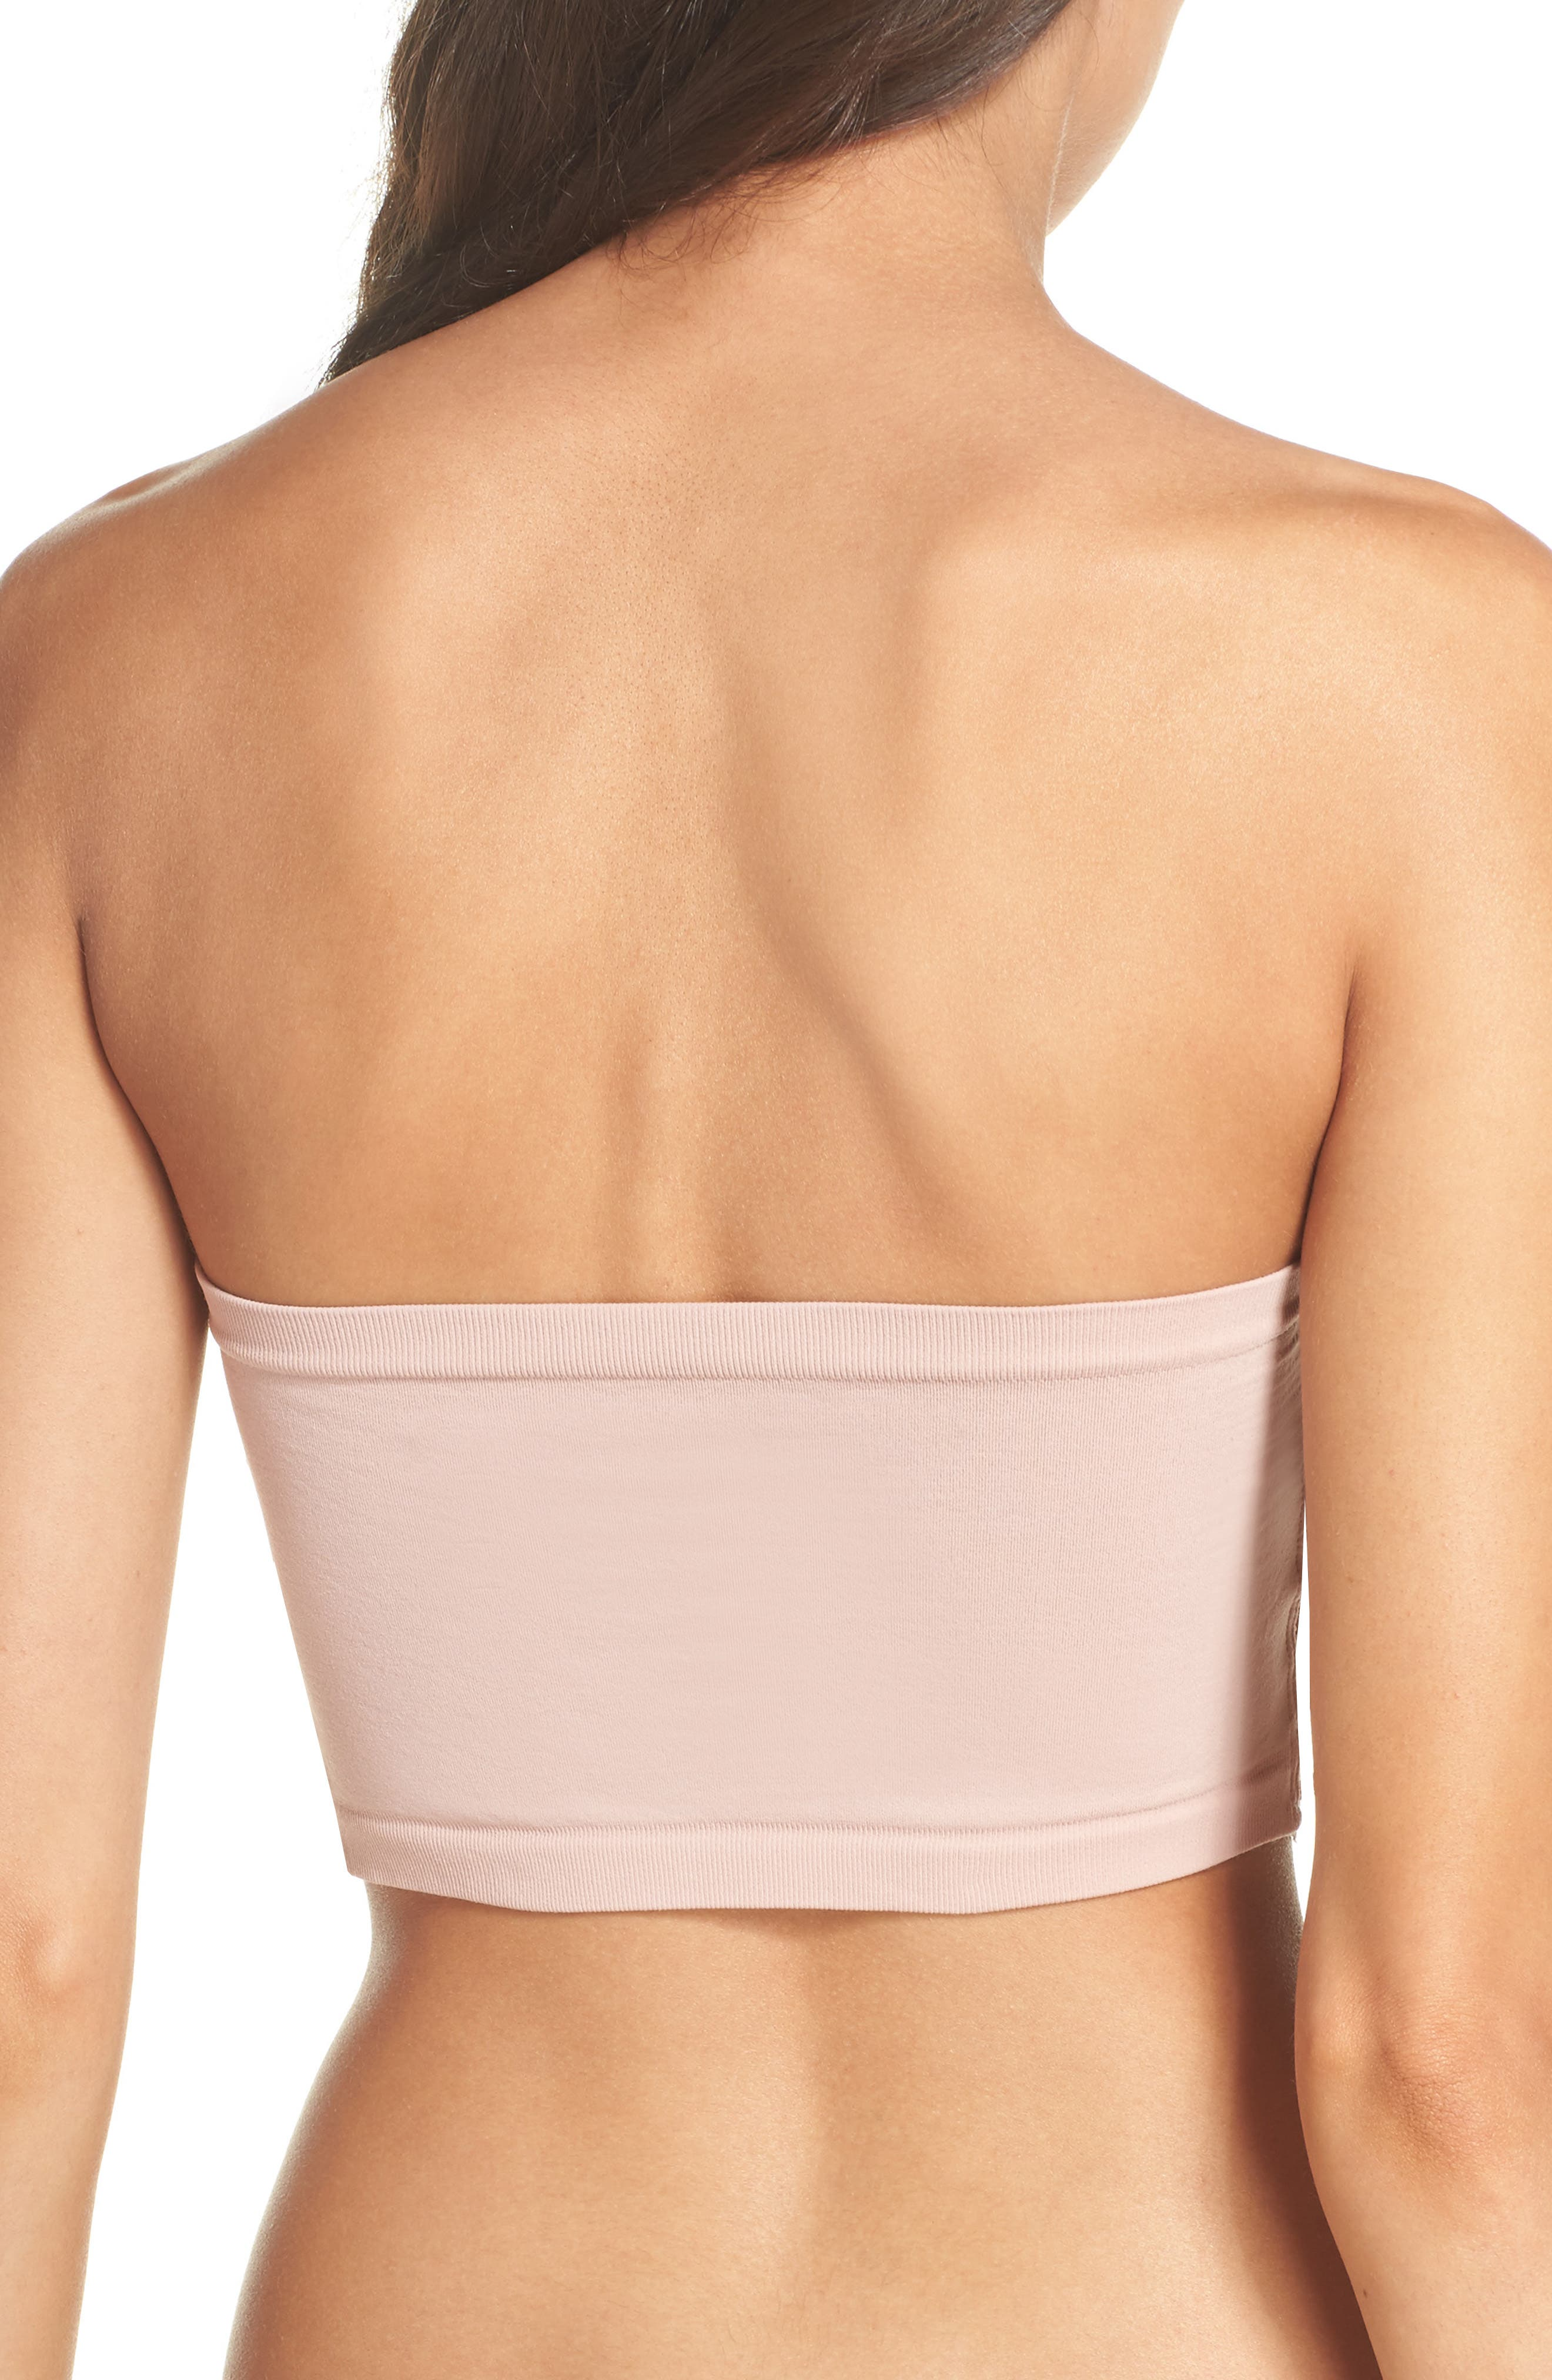 Intimately FP Lace Reversible Seamless Bandeau,                             Alternate thumbnail 18, color,